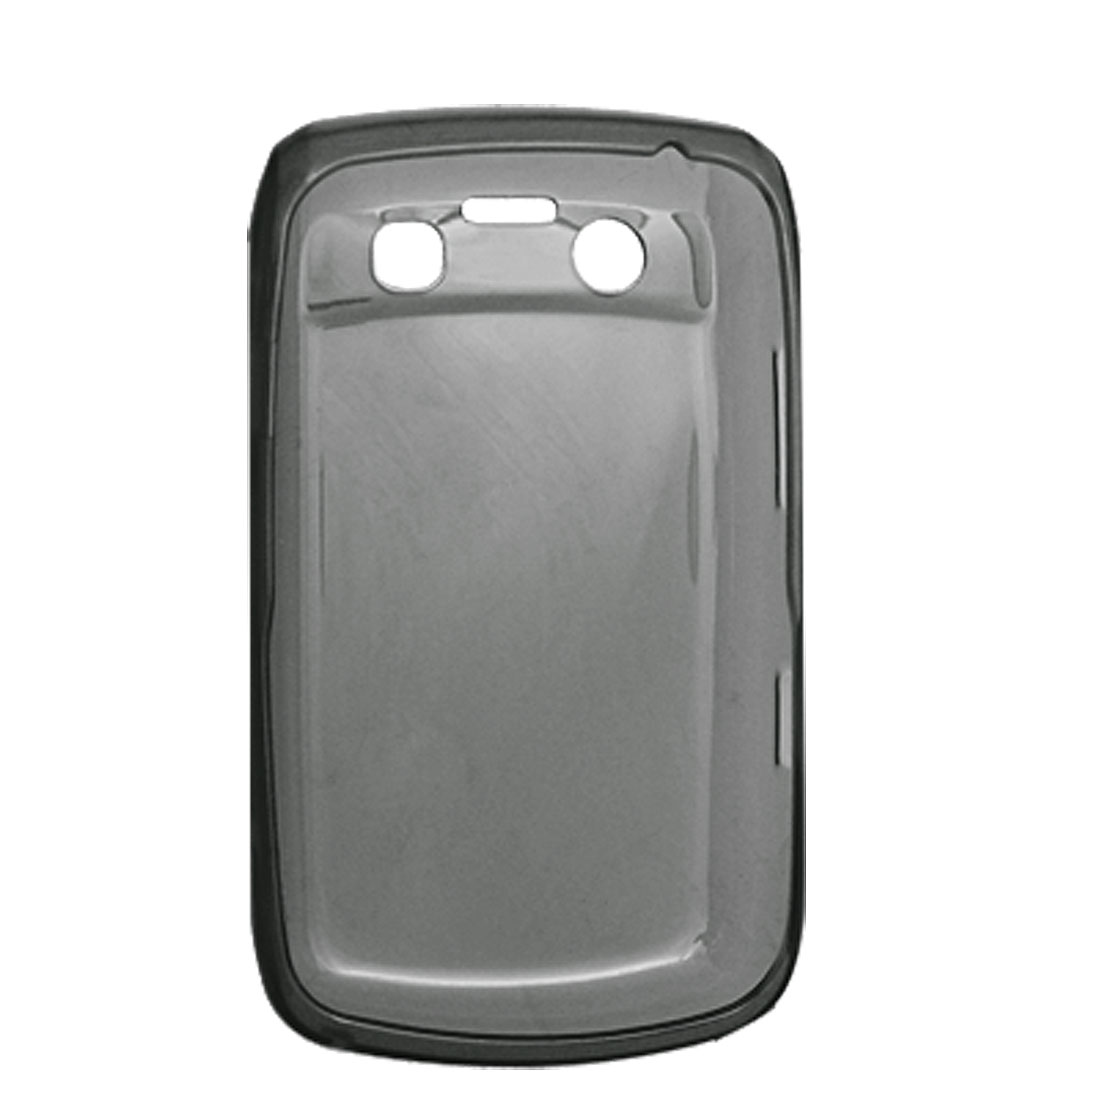 Grey Mobile Soft Plastic Case Cover for BlackBerry 9700